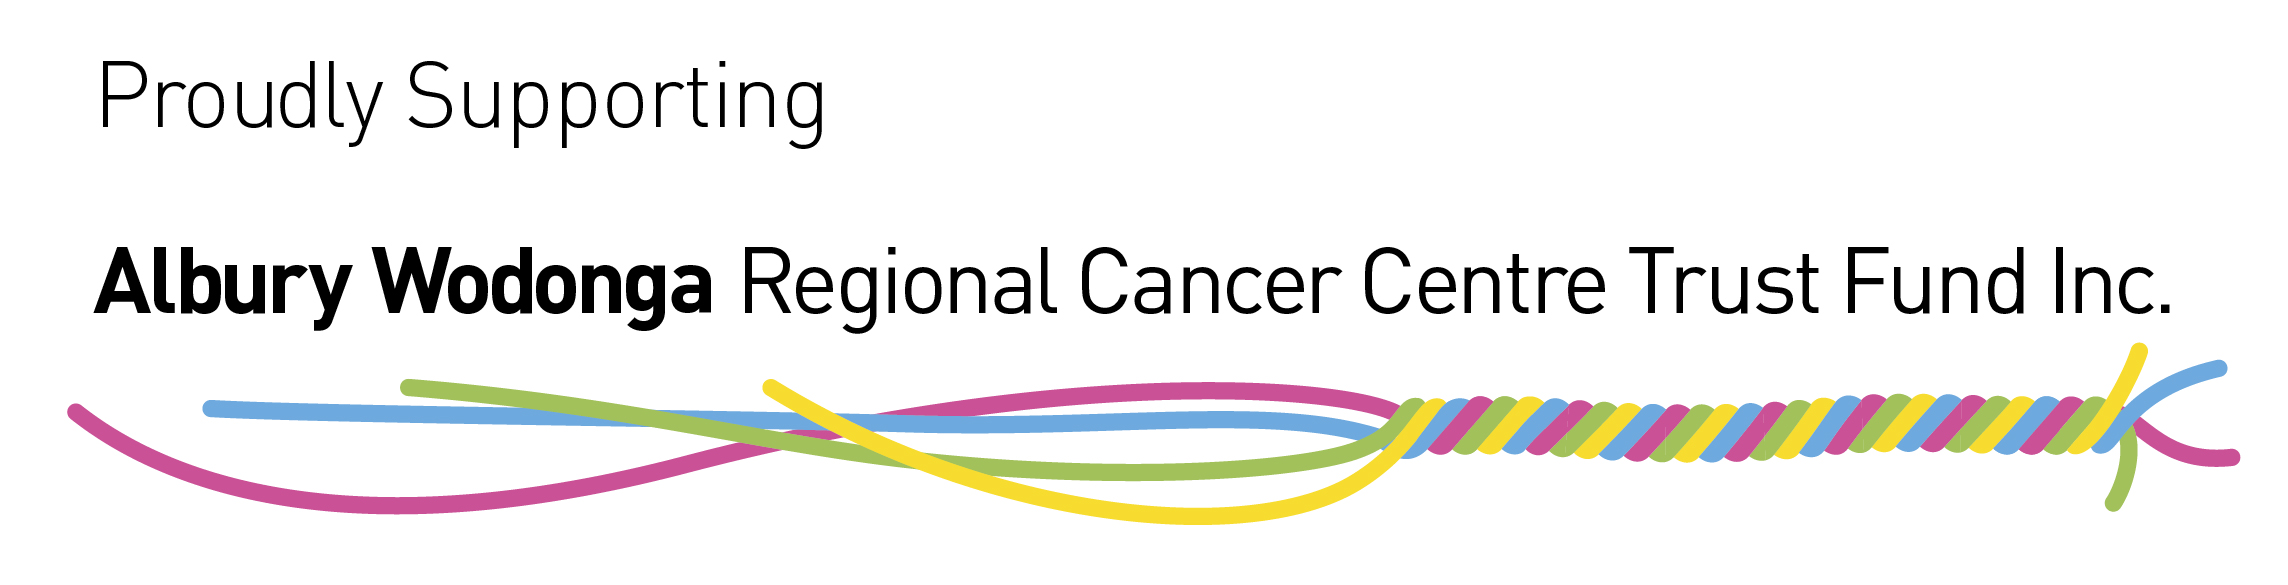 Regional Cancer Centre Trust Fund